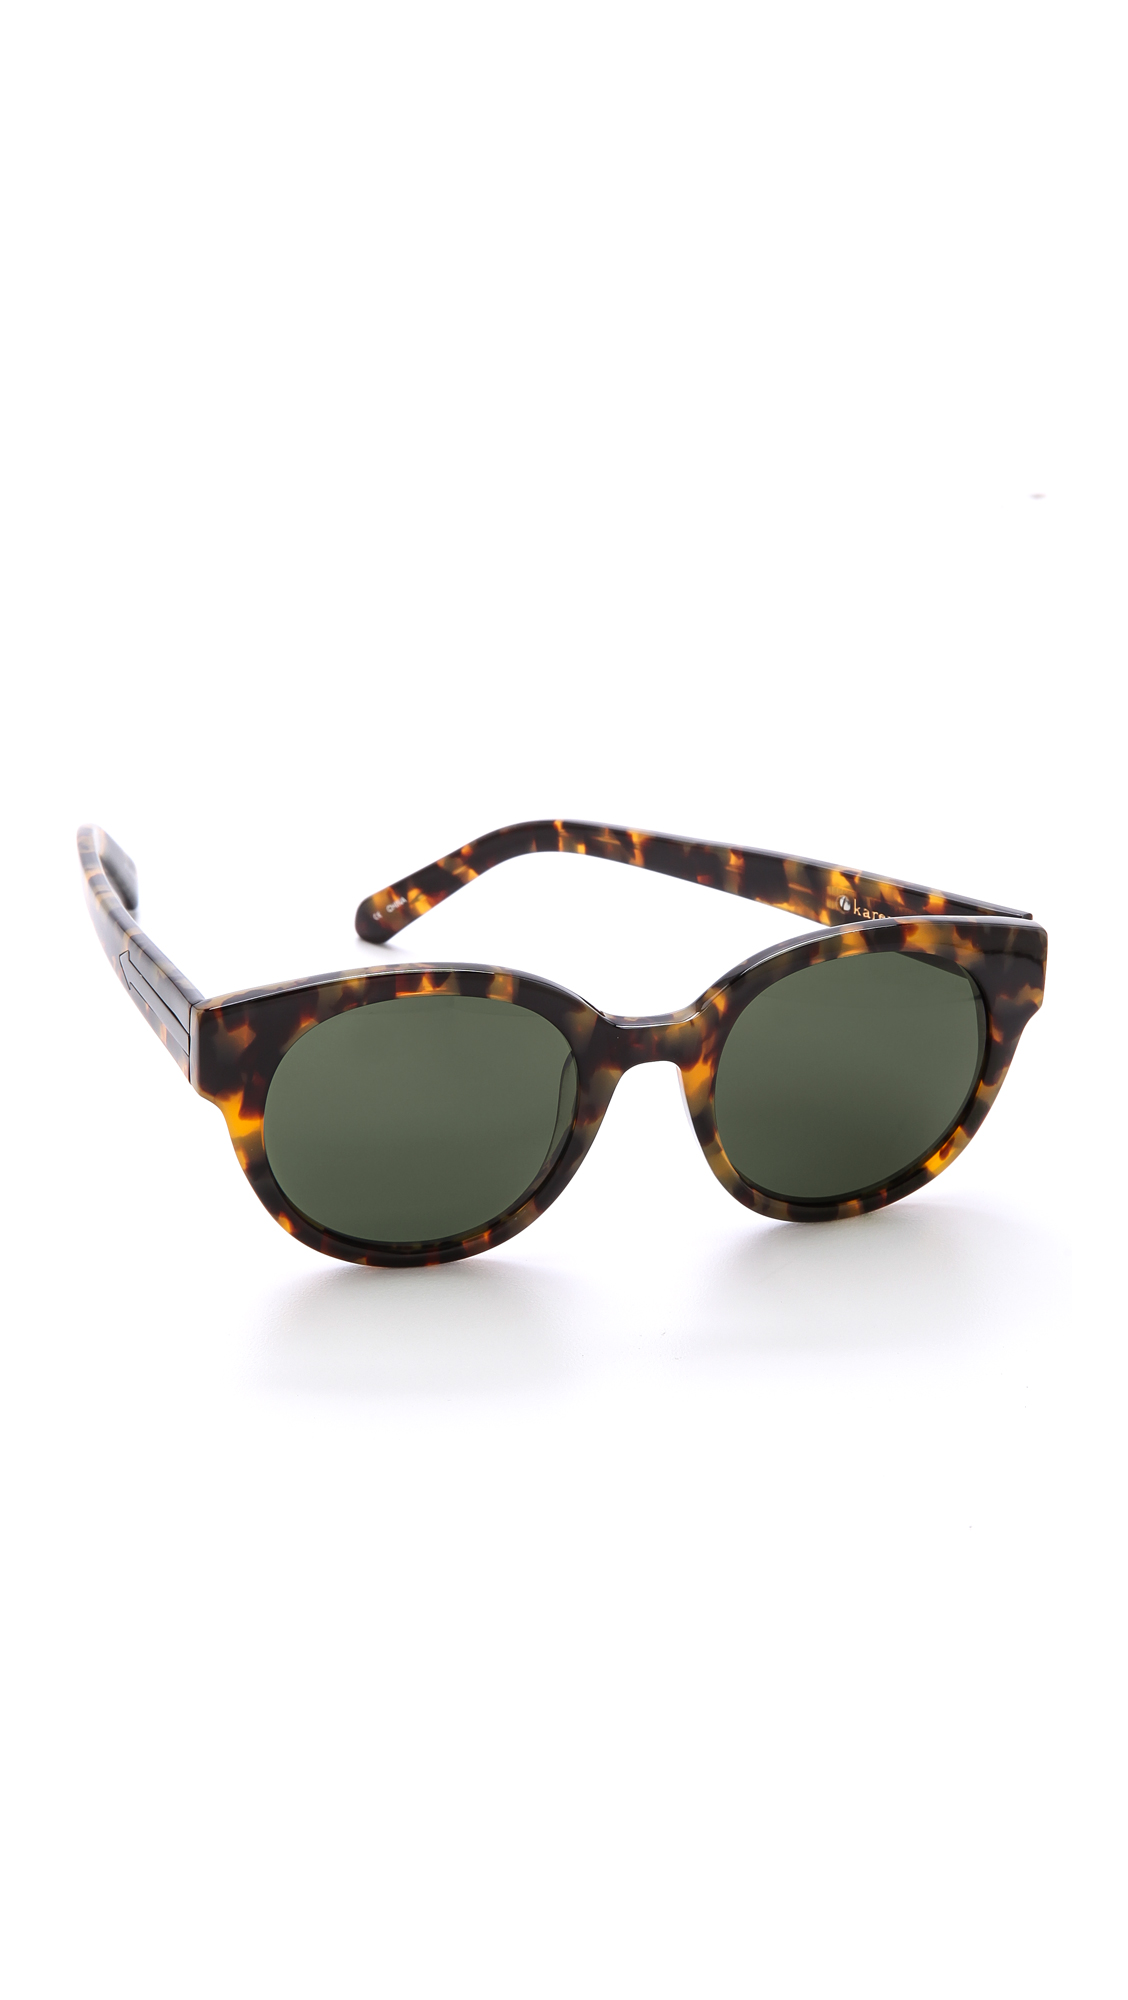 Karen walker anywhere sunglasses